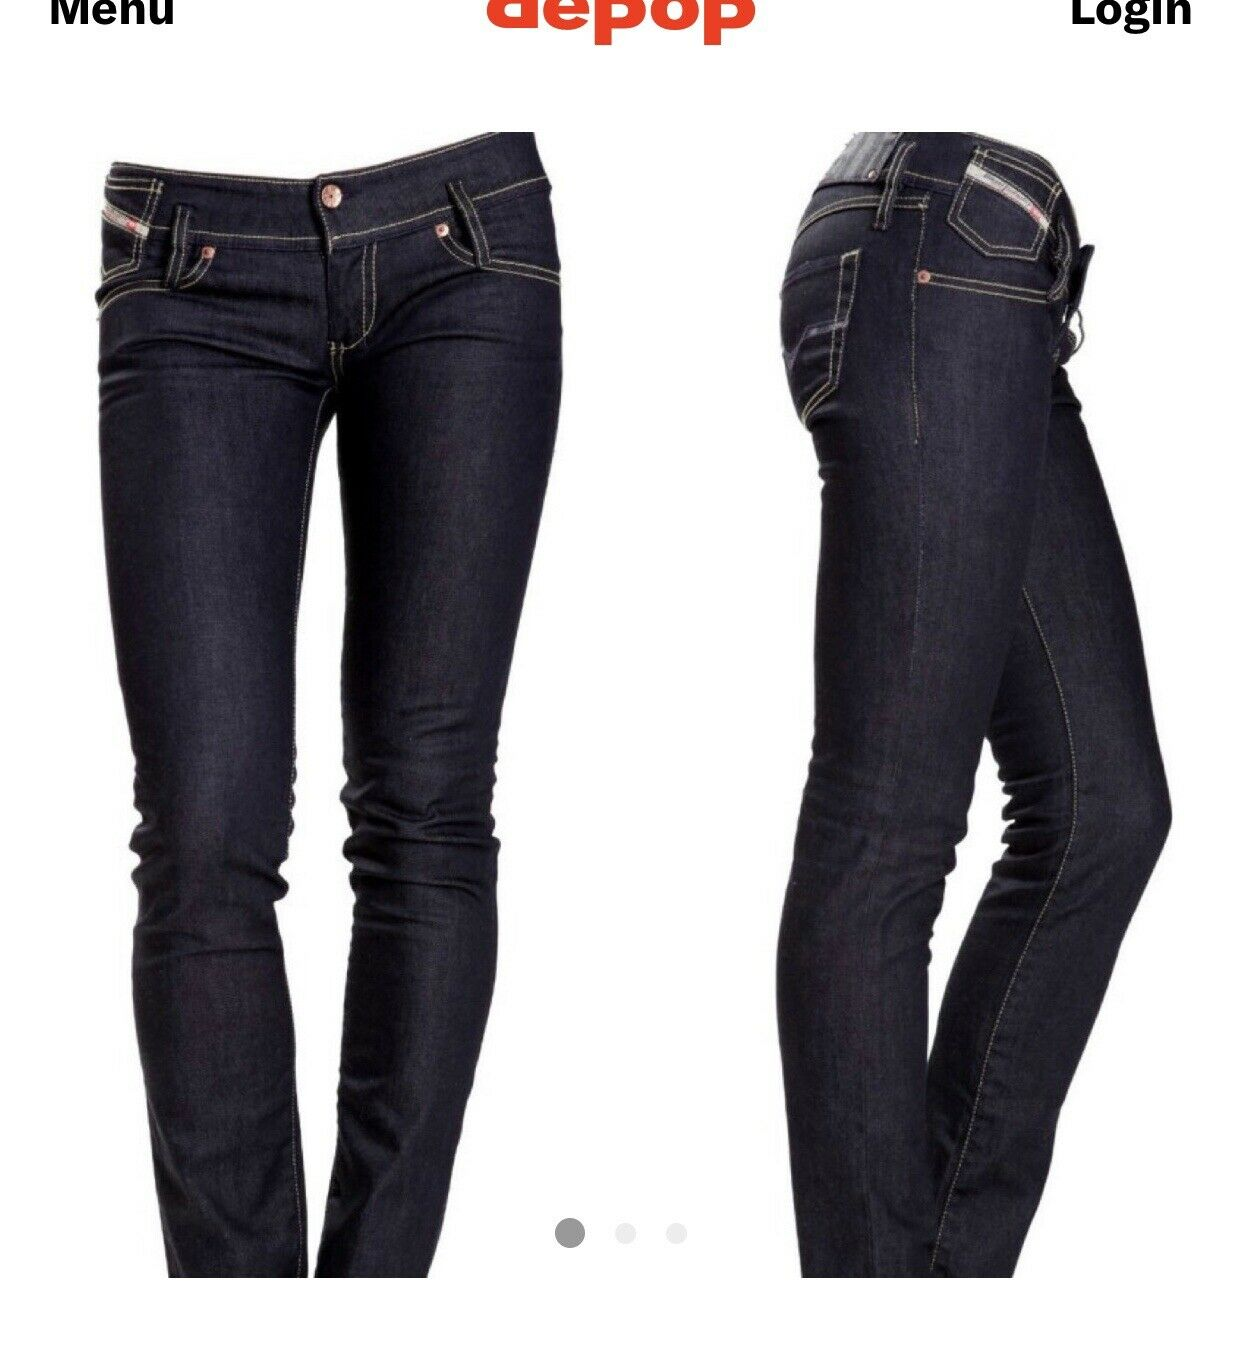 Women's Diesel Matic Straight Jeans Dark Wash Low Rise Size 26 Stretch Slim Pant